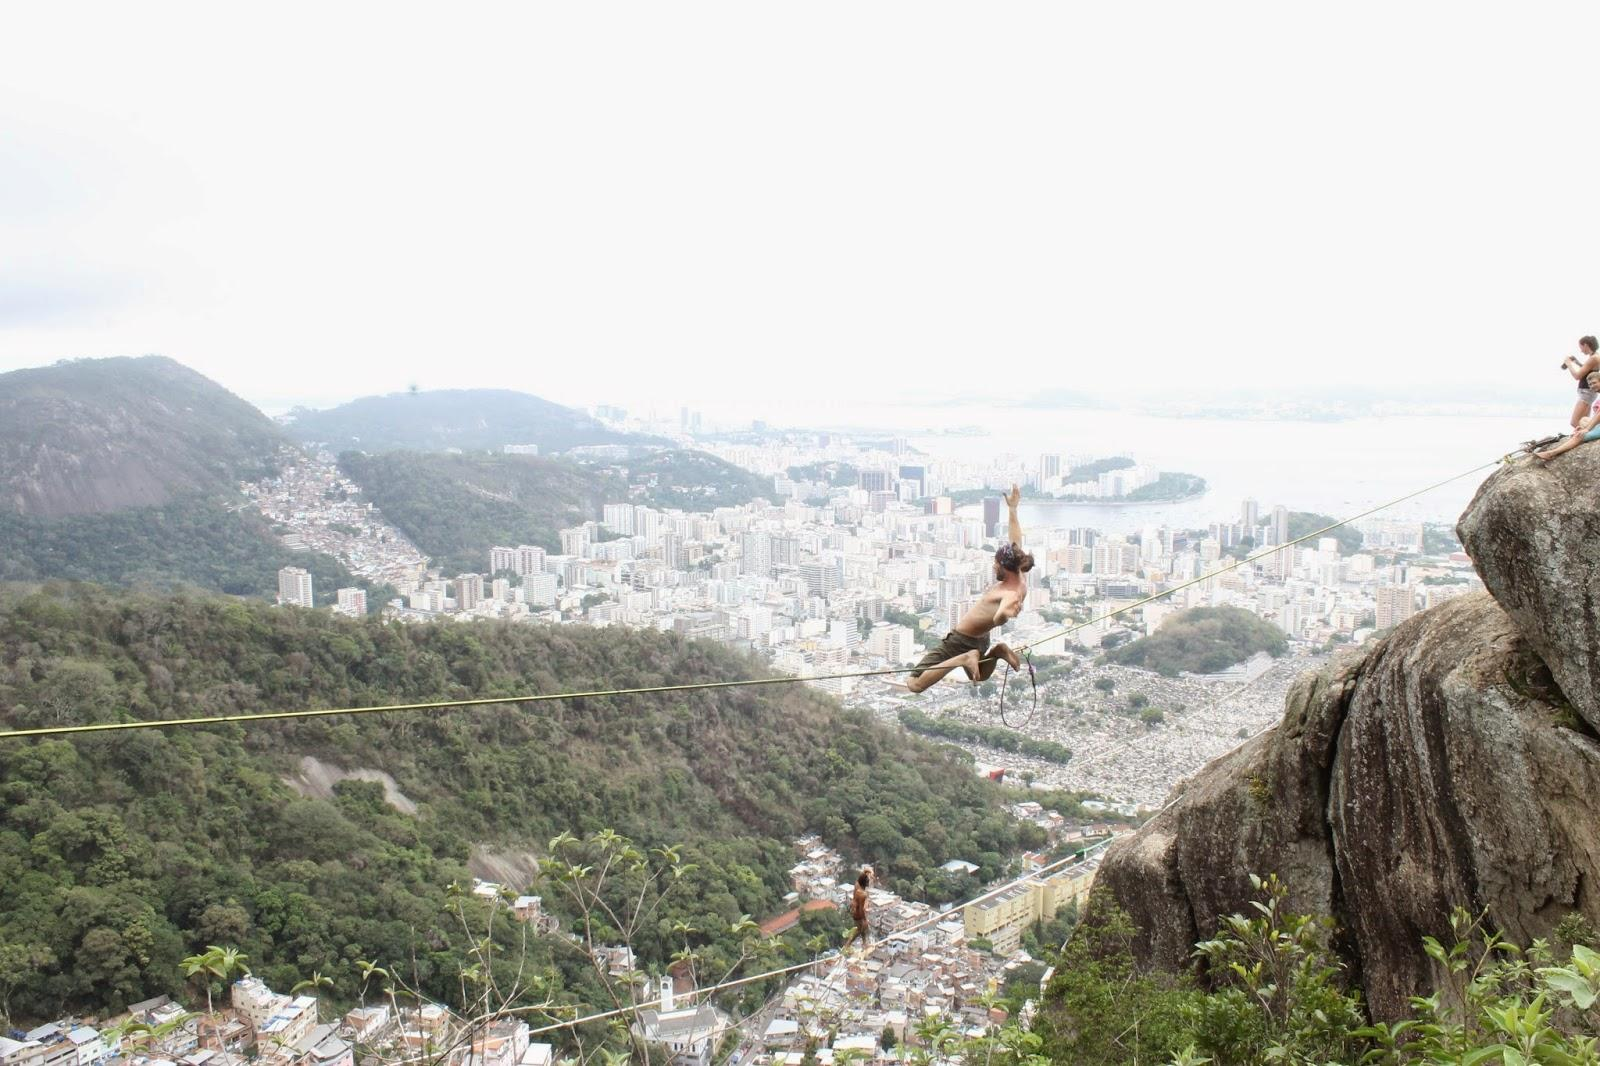 Part 2 - Brazil : Laure Millot and Co